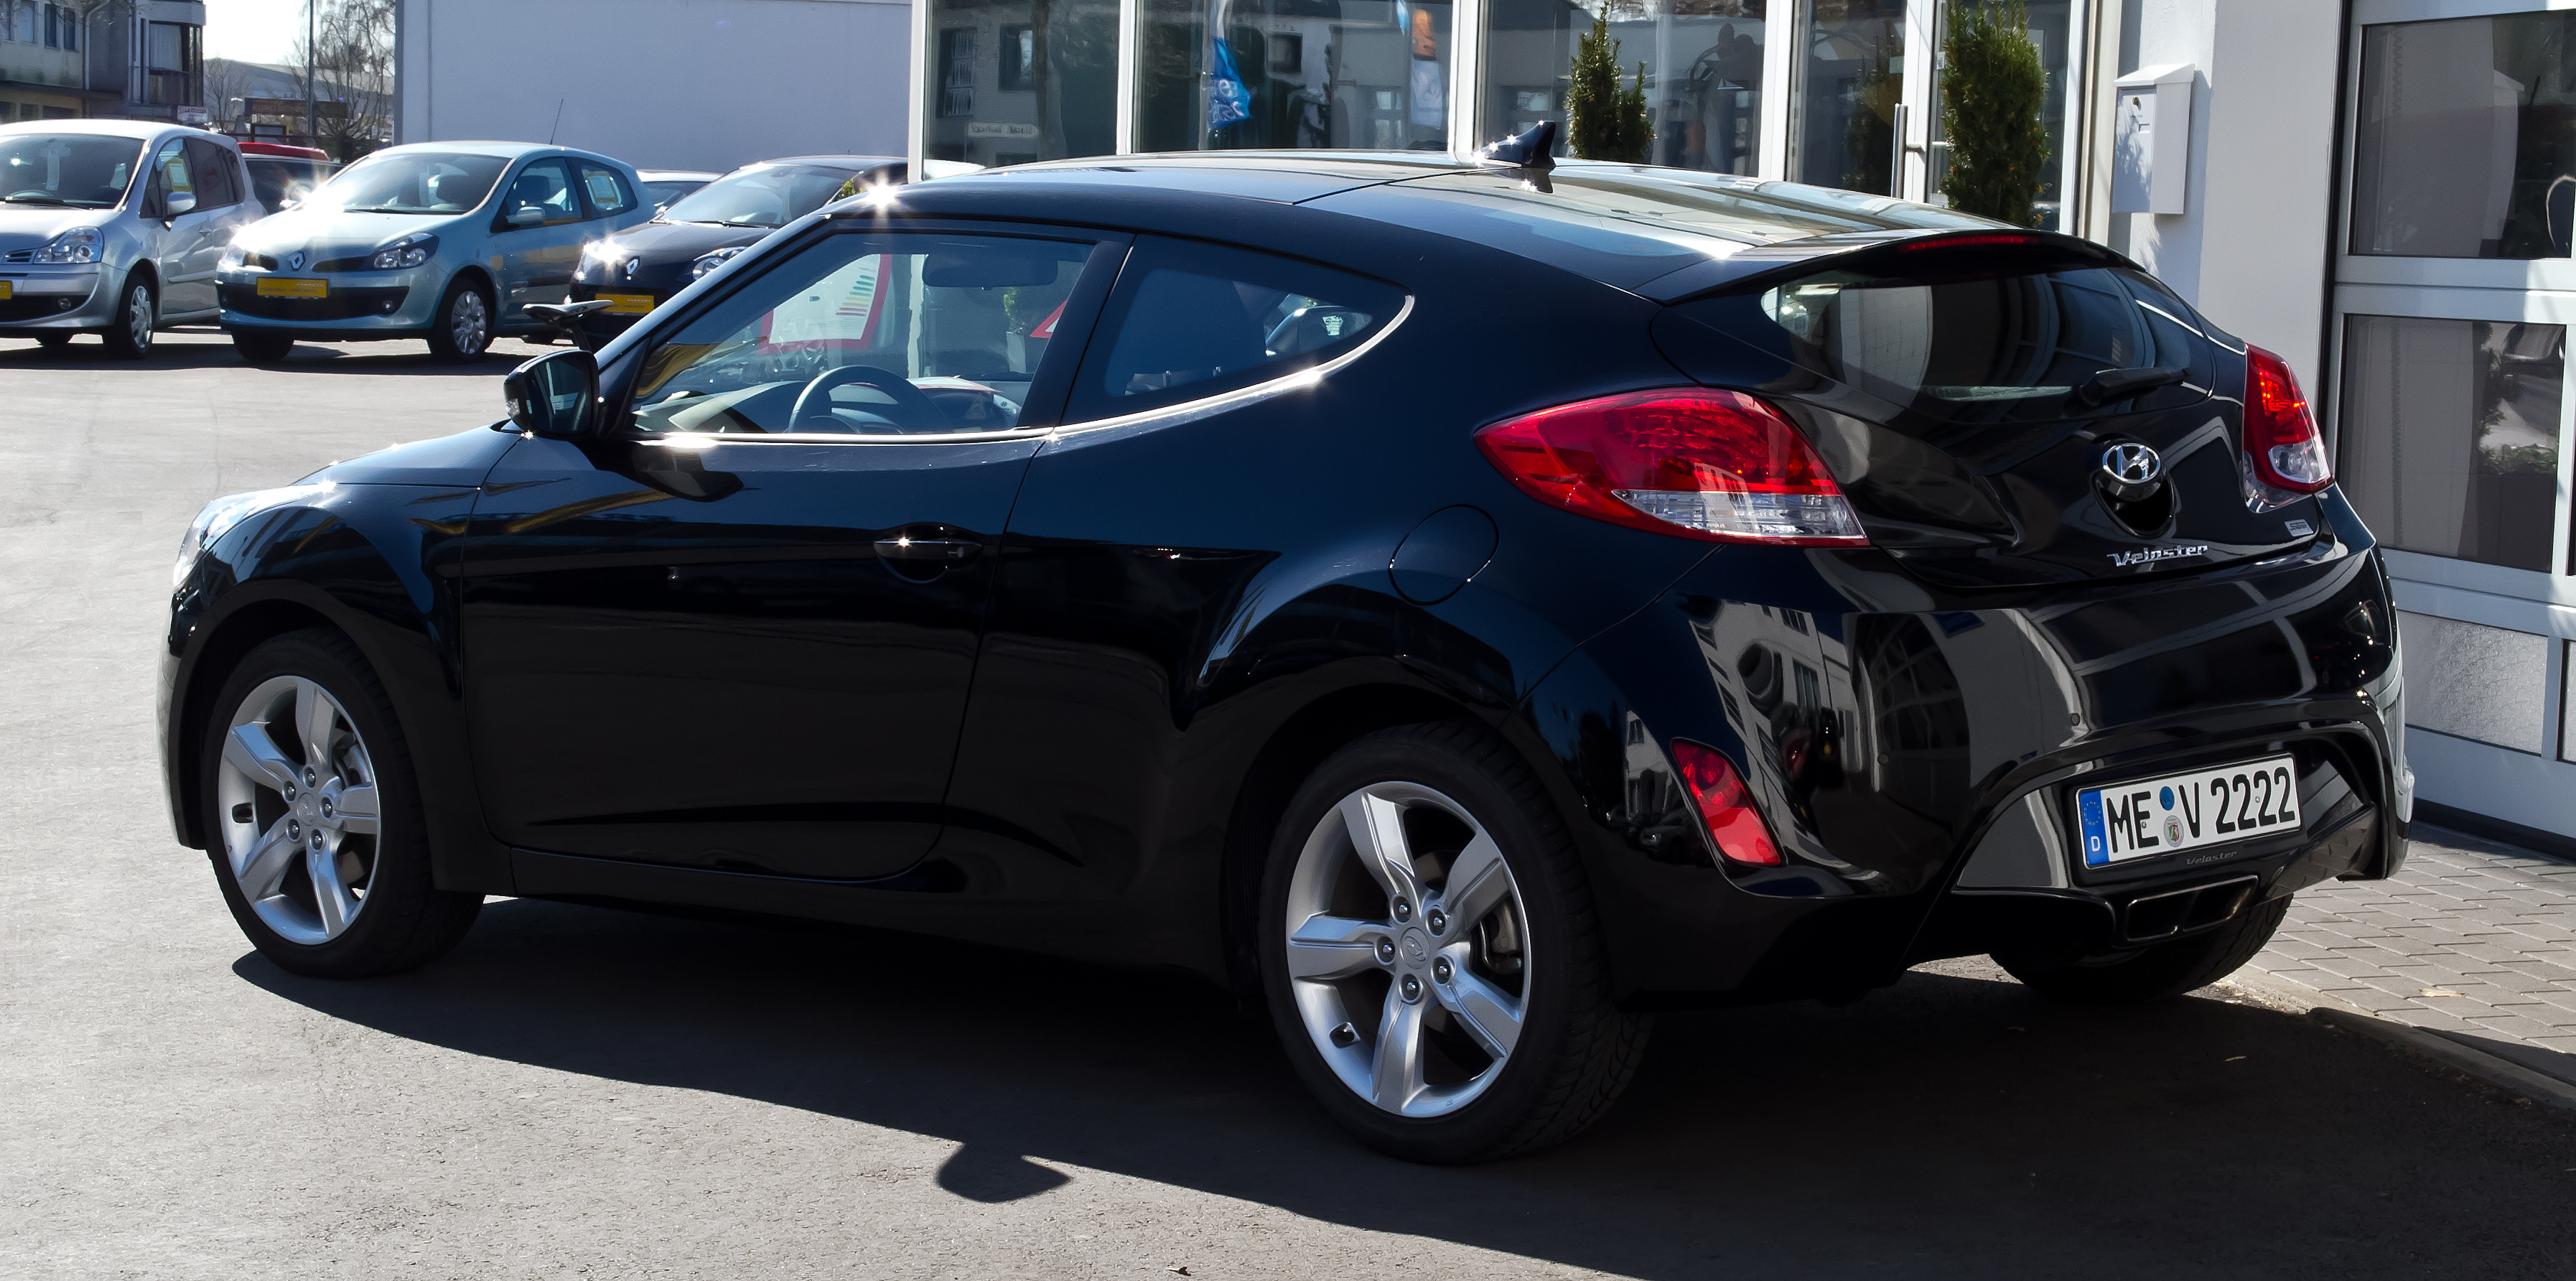 Hyundai Veloster 1.6 2012 photo - 3